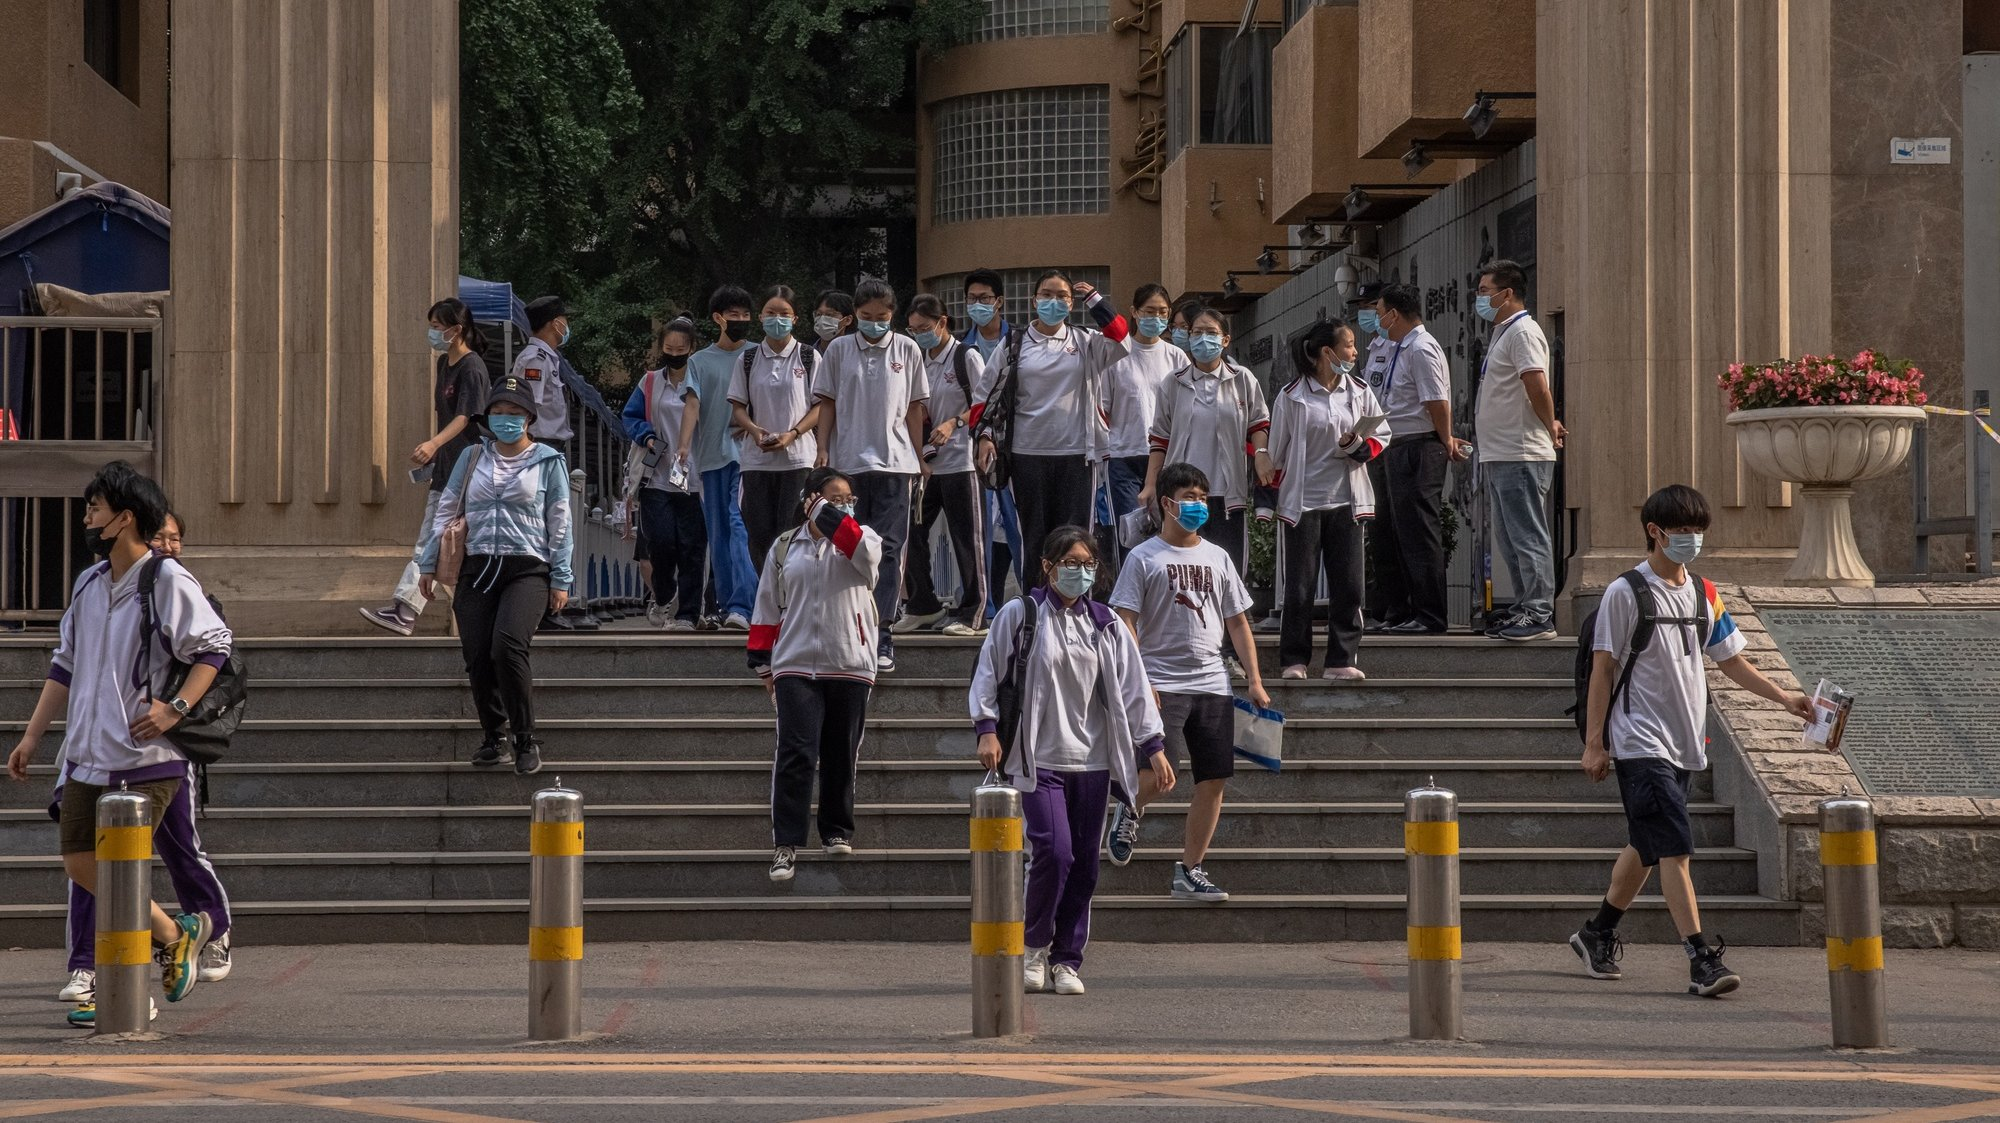 epa09254466 Students wearing protective face masks leave a school after the last exam on the final day of China's annual national college entrance examinations, in Beijing, China, 08 June 2021. China's annual national college entrance examination, commonly known as Gaokao usually takes place in June. This year examinations began 07 June and lasted for two days with around 10.8 million students across the country attending it.  EPA/ROMAN PILIPEY